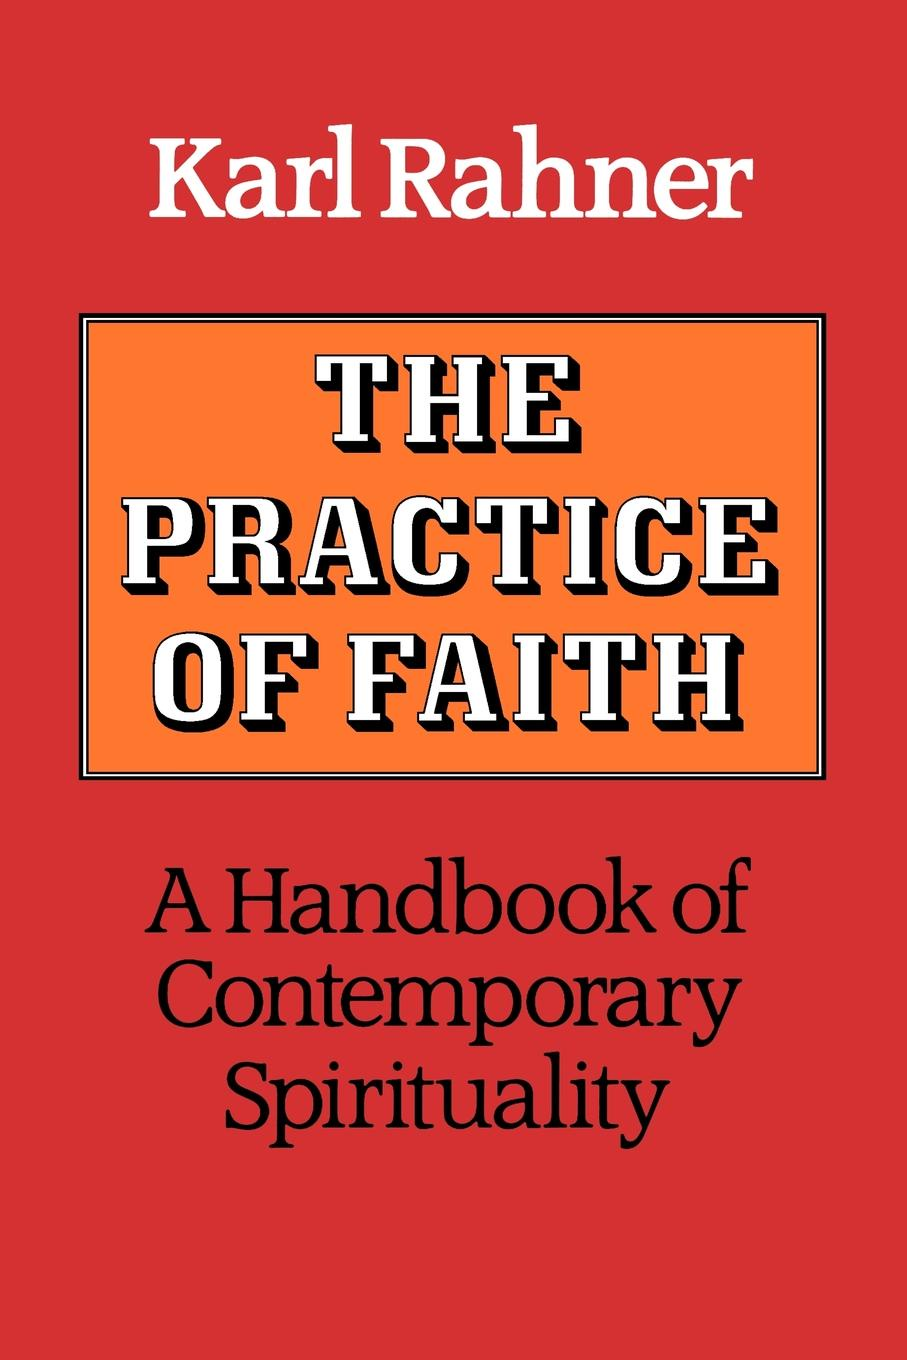 Karl Rahner The Practice of Faith. A Handbook of Contemporary Spirituality